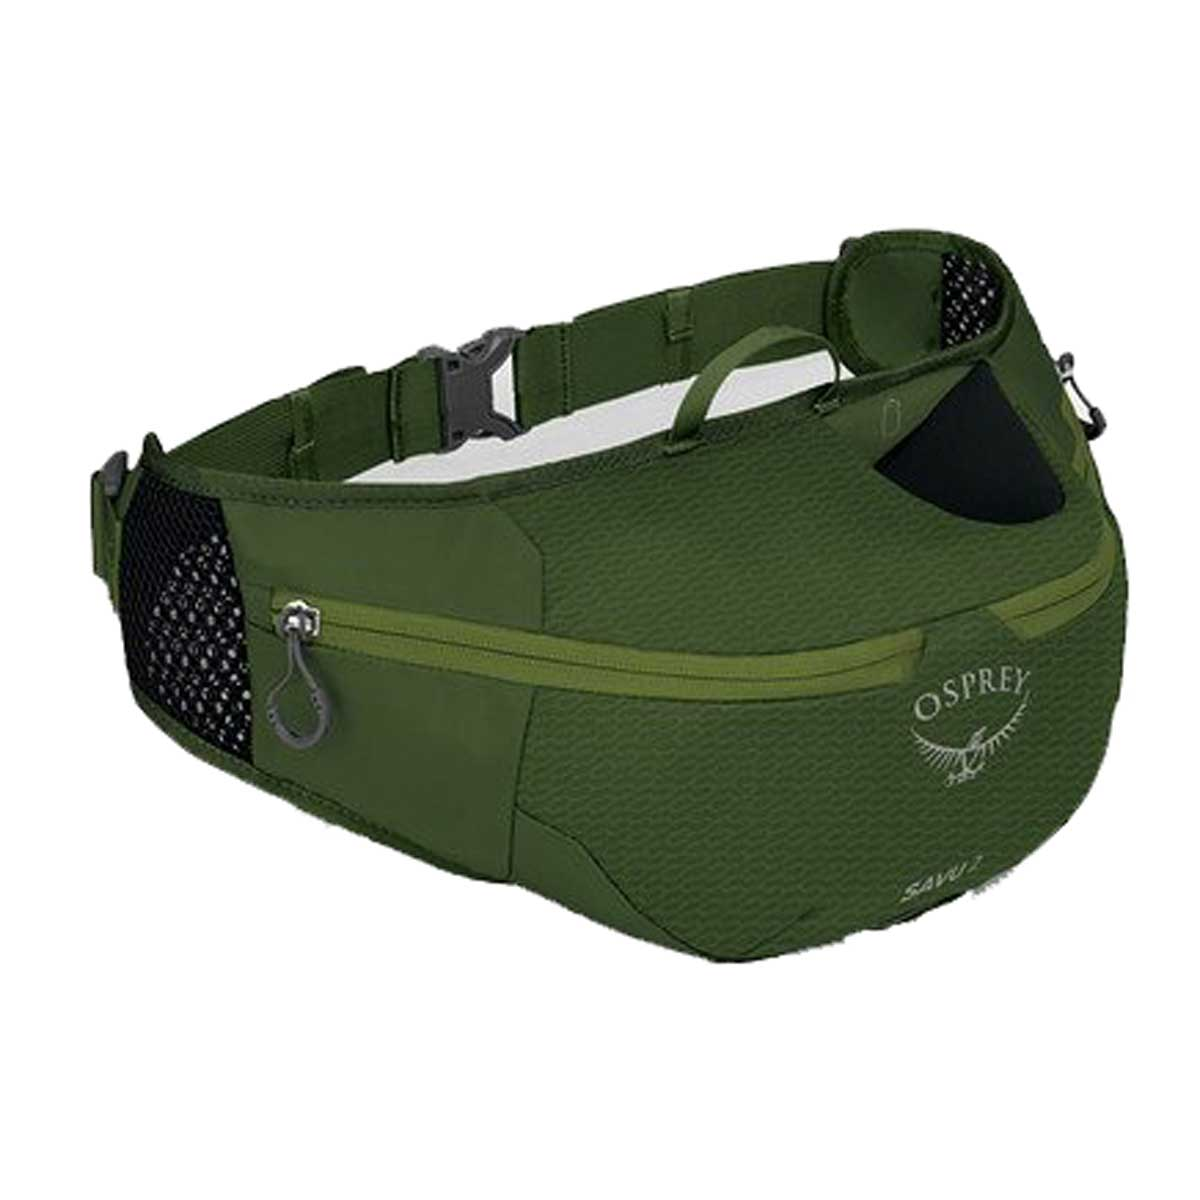 Osprey Savu 2 Pack in Dustmoss Green